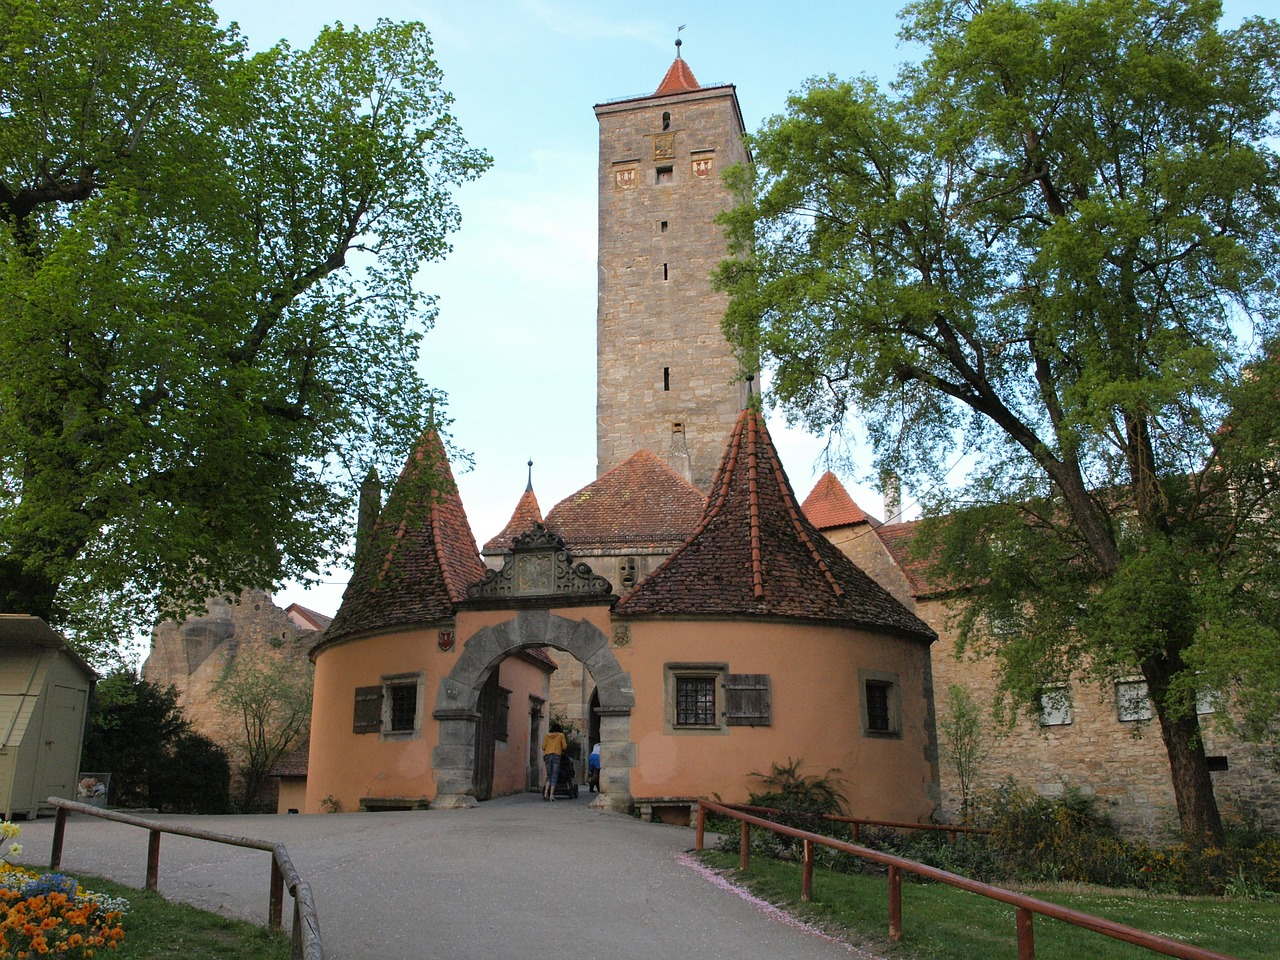 Die Stauferburg in Rothenburg o.d.T.